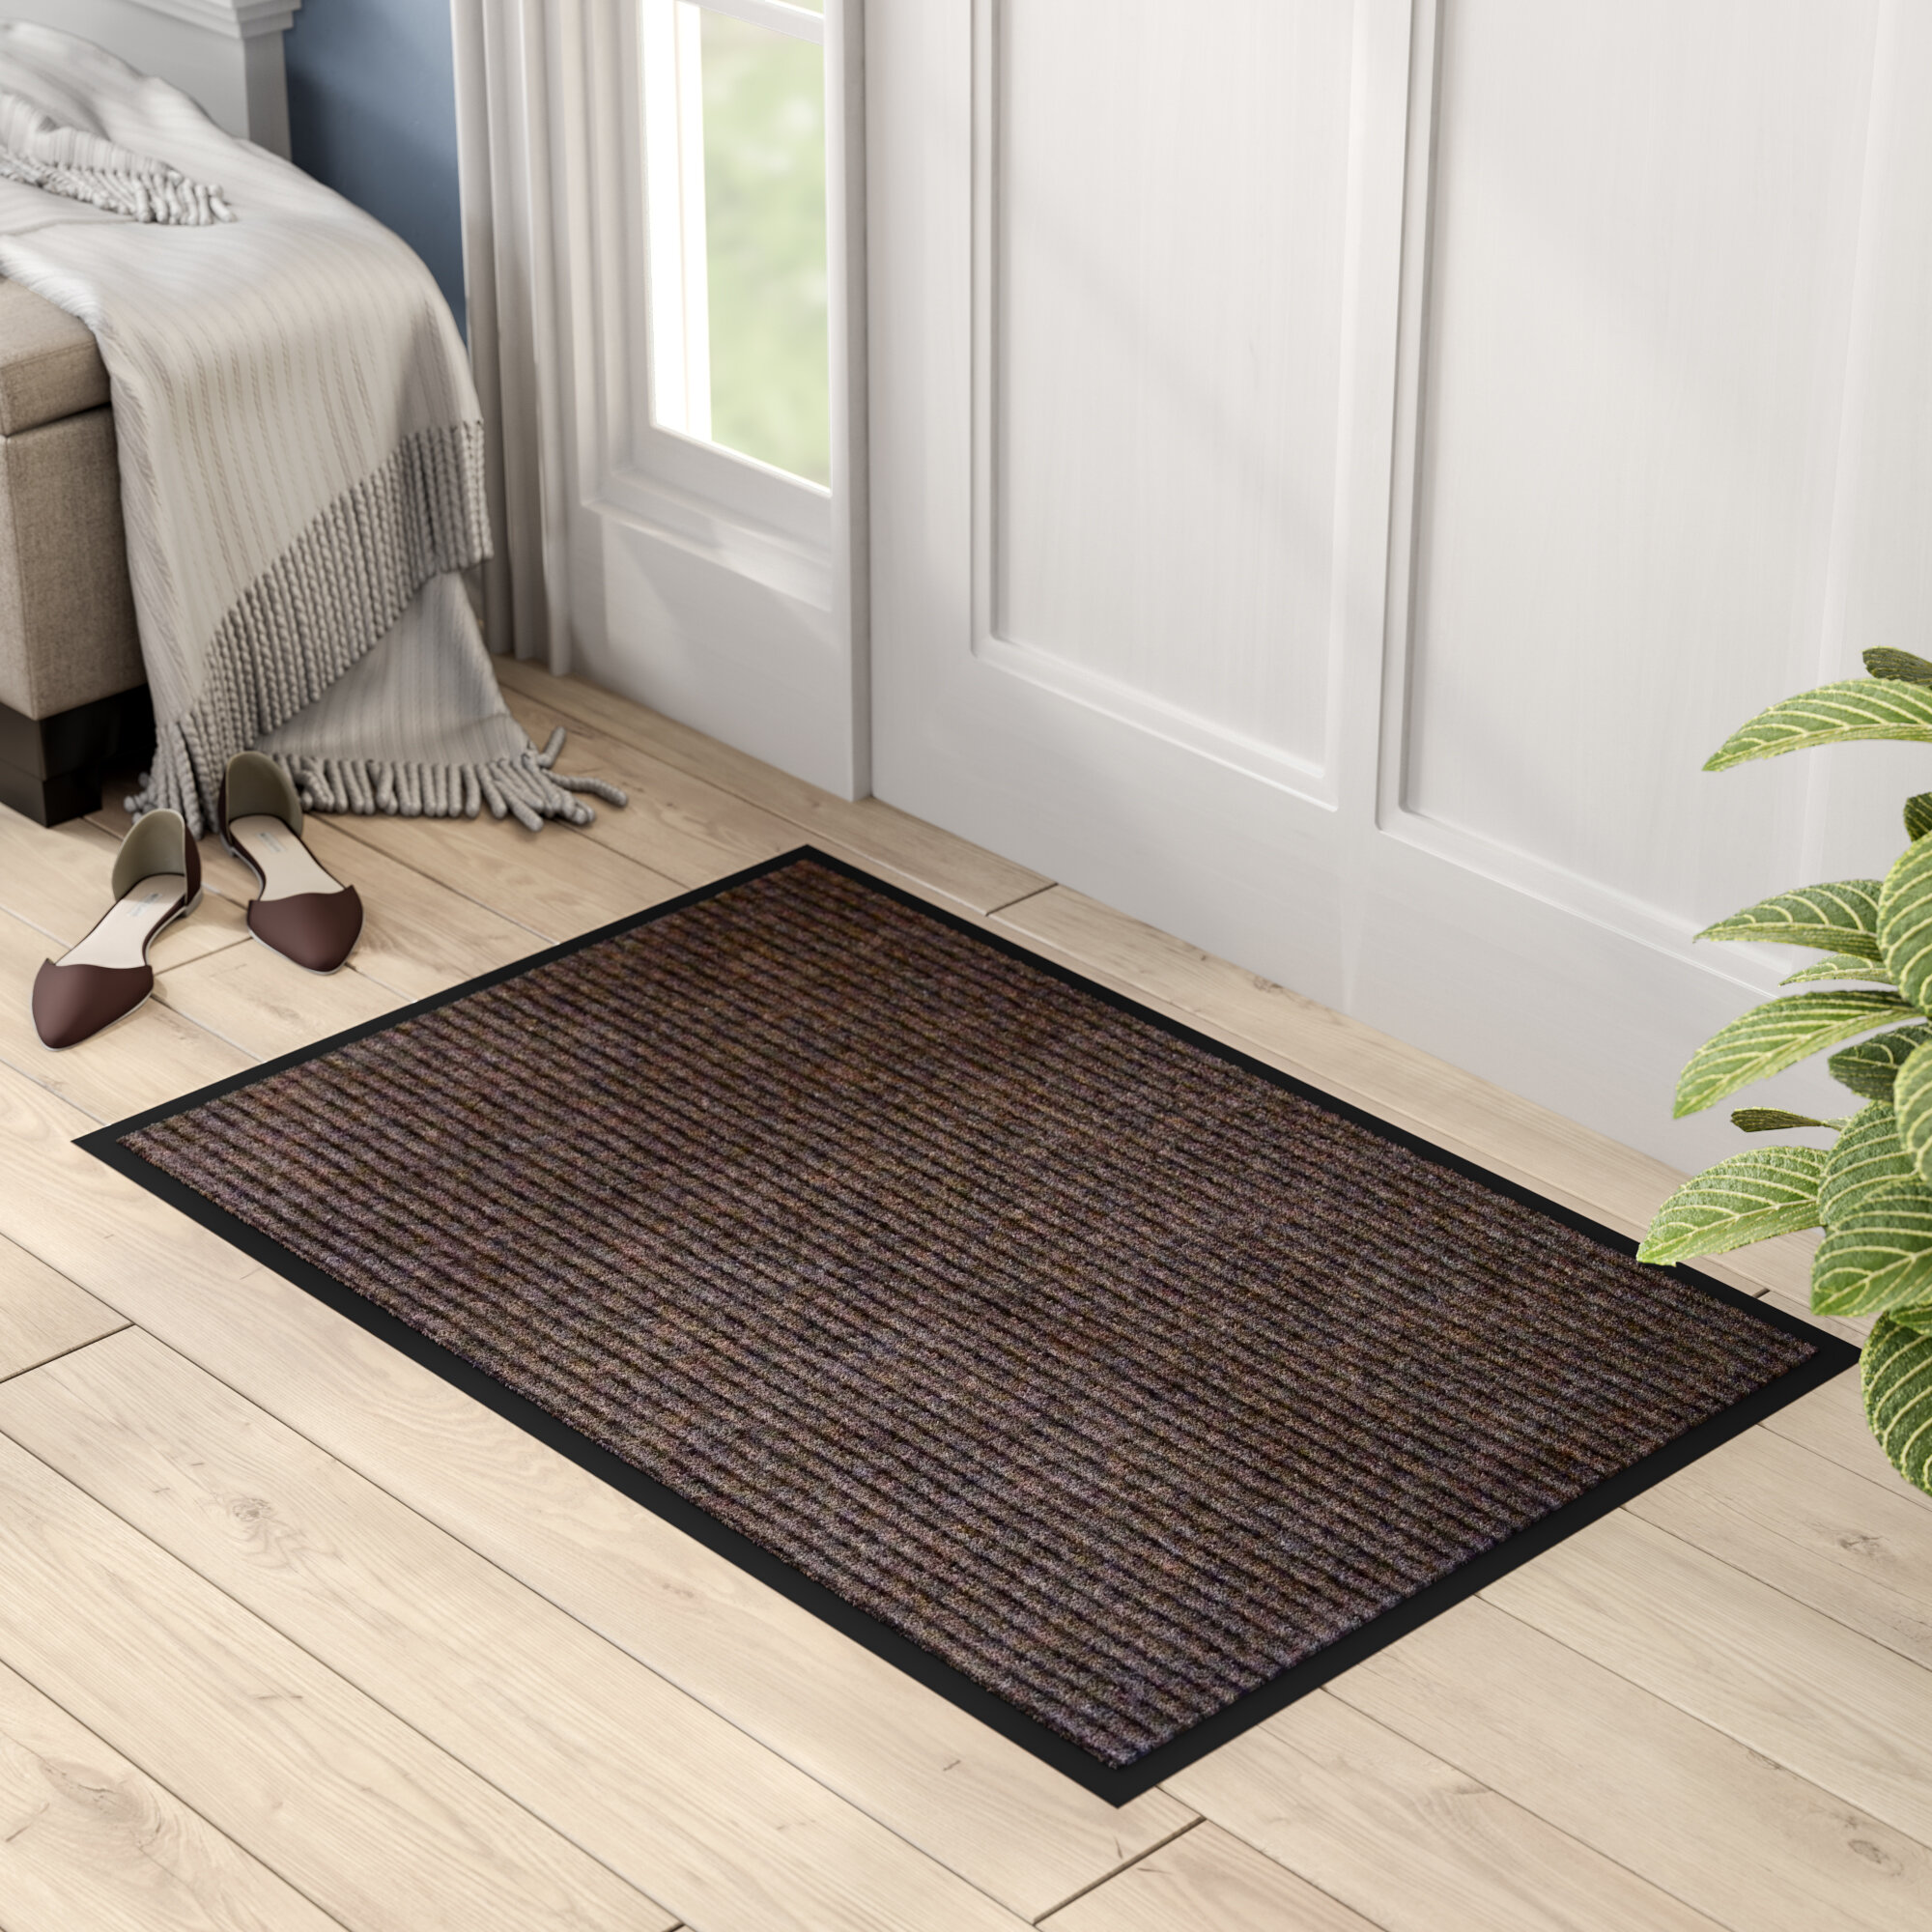 Hastings rectangular indoor ribbed entrance doormat